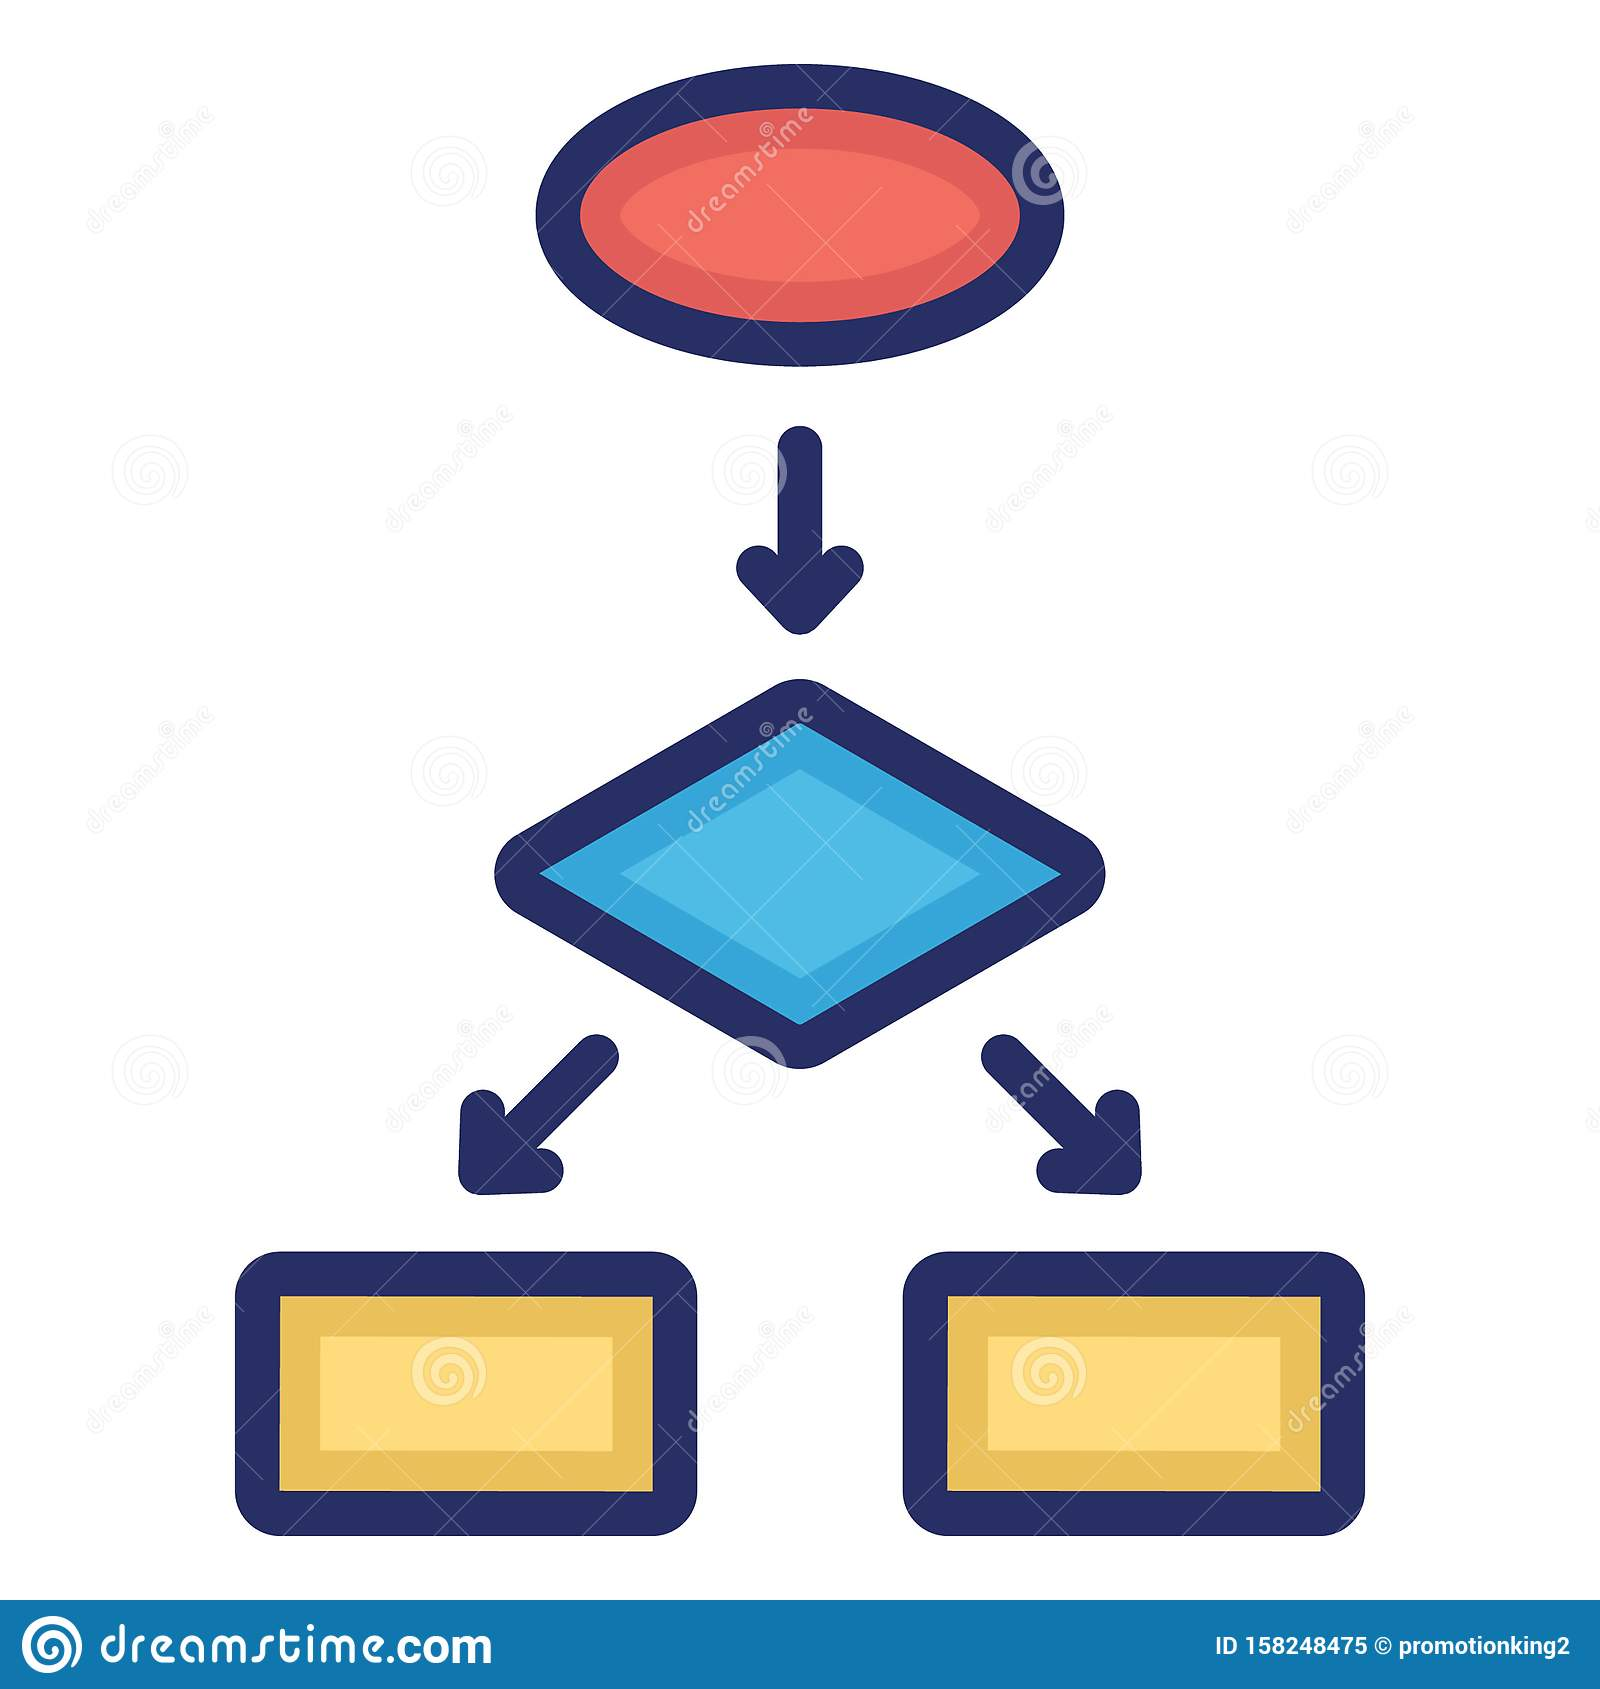 Diagram, flowchart Isolated Vector Icon Which can easily modify or edit